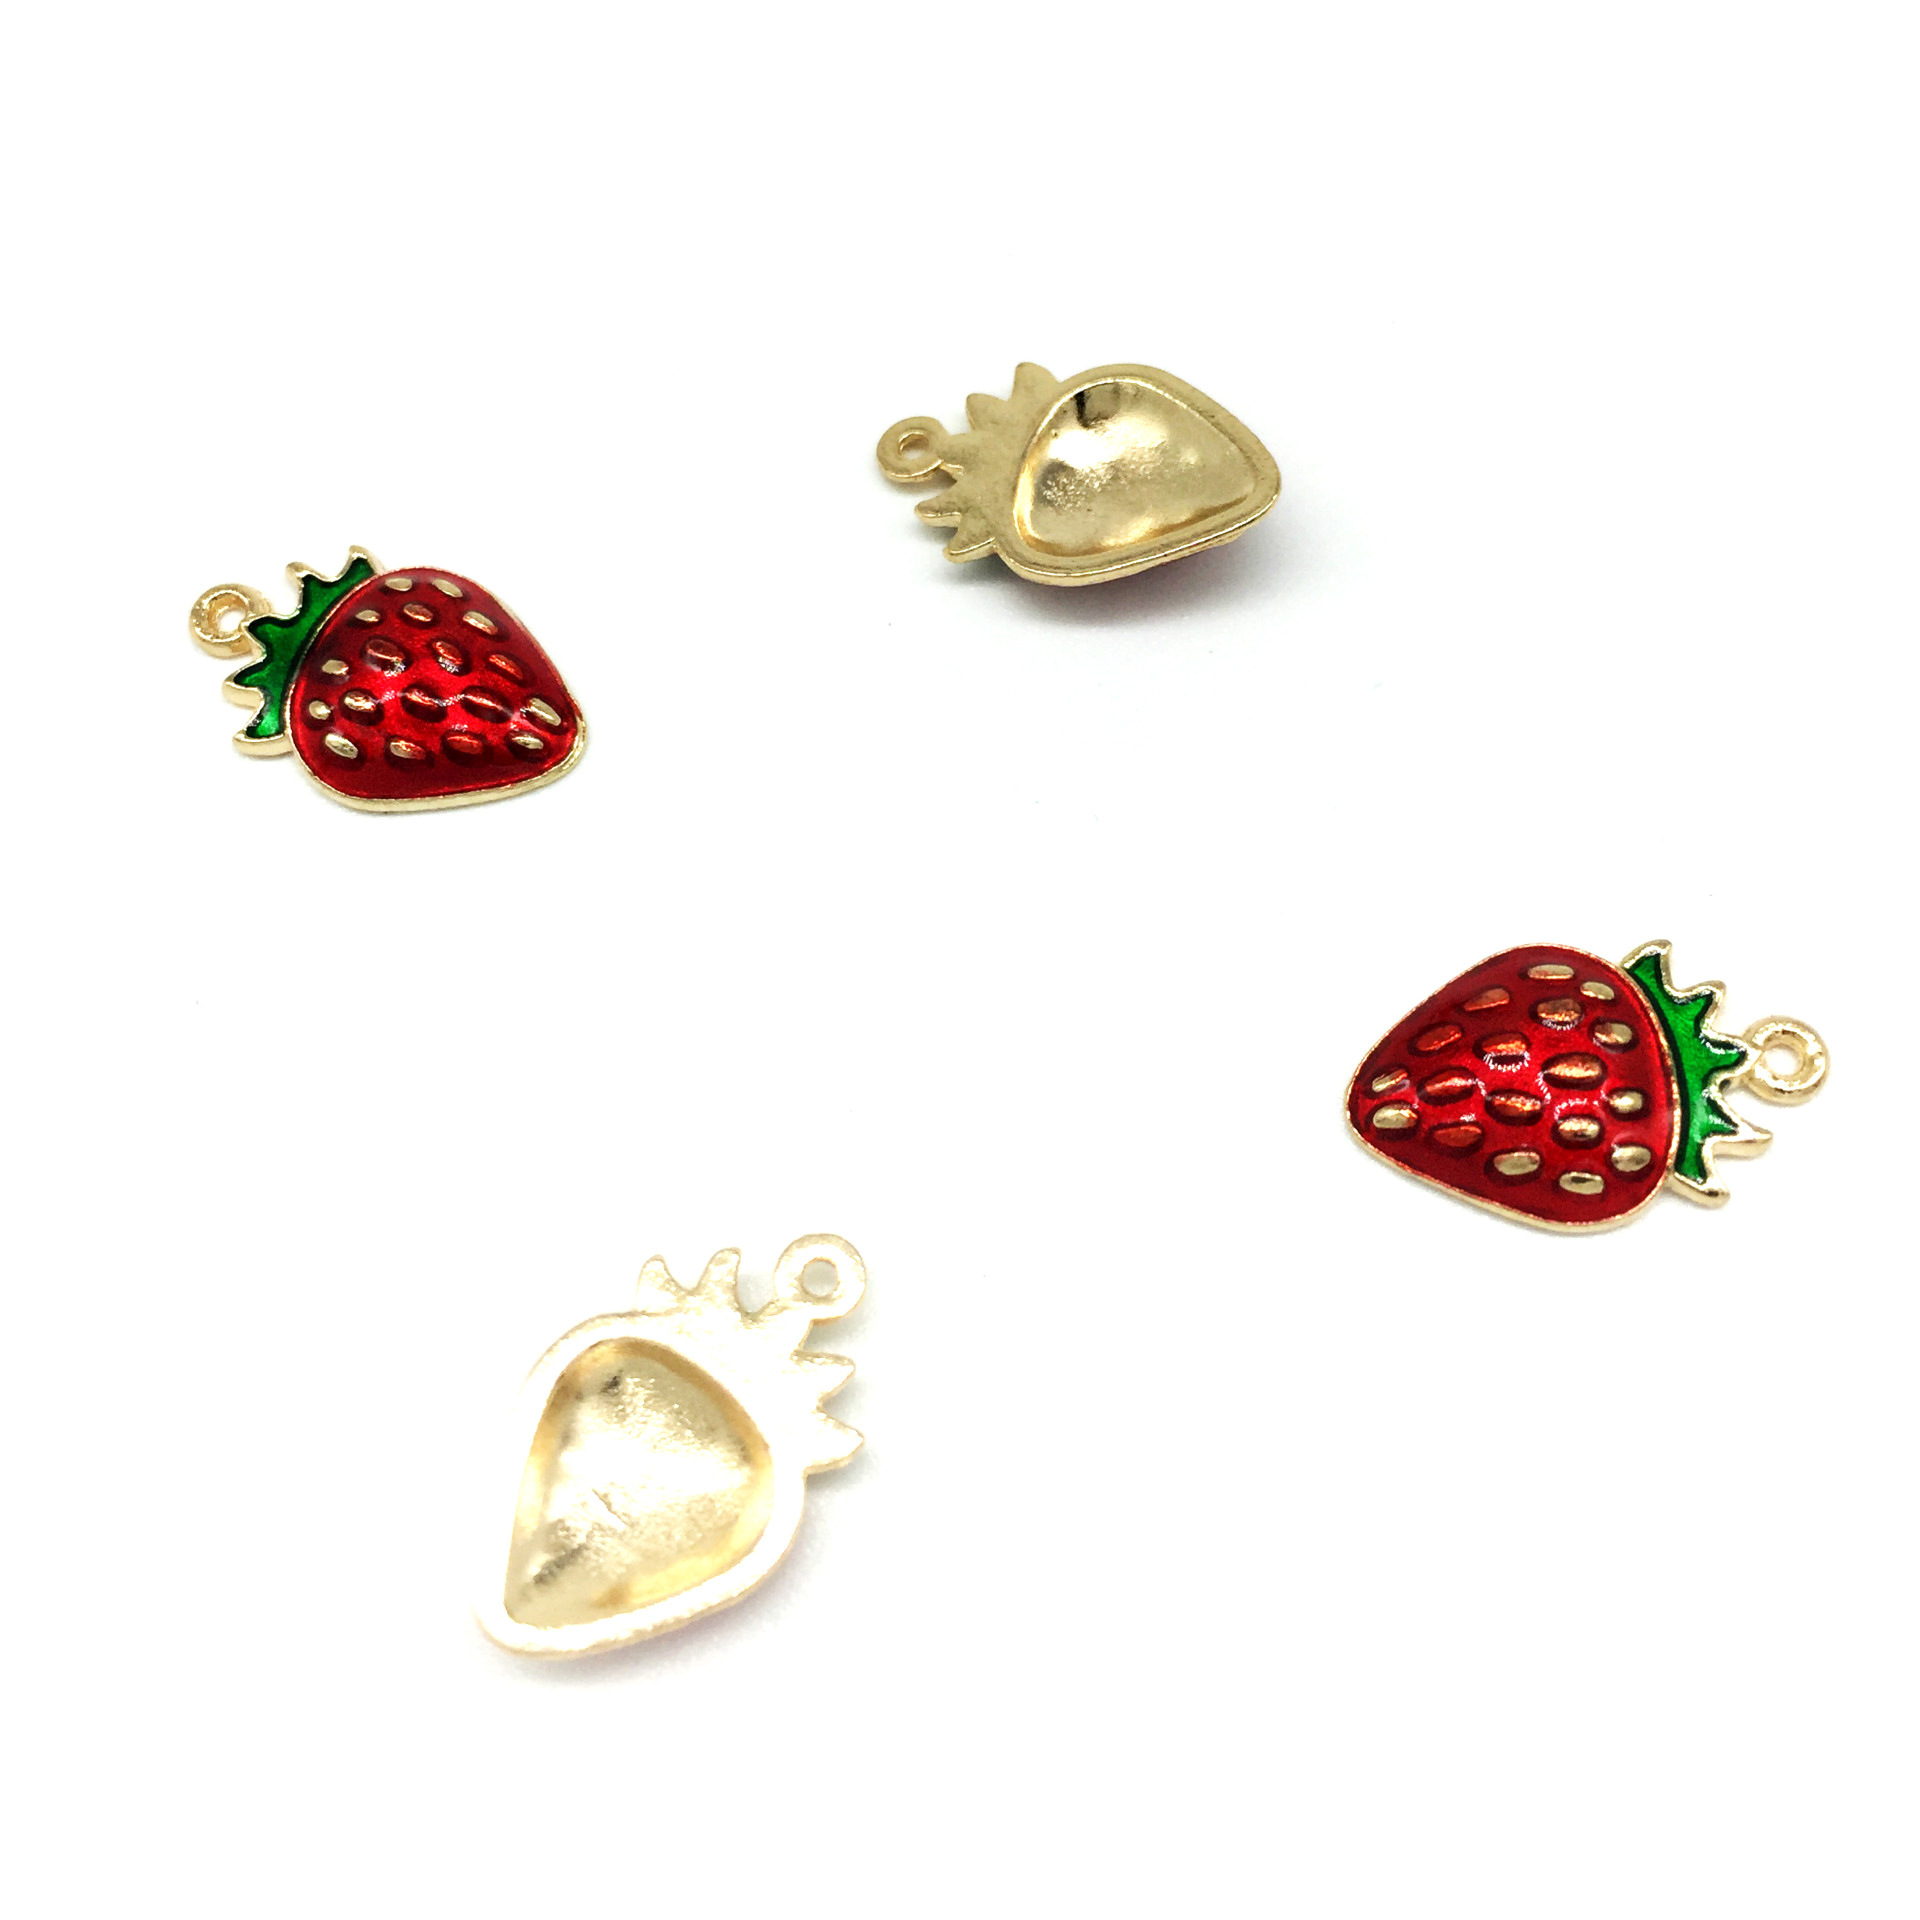 10pcs lot New Arrival Cute Gold Tone All Enamel 11 17mm Strawberry Charms Pendants For Jewelry Making in Charms from Jewelry Accessories